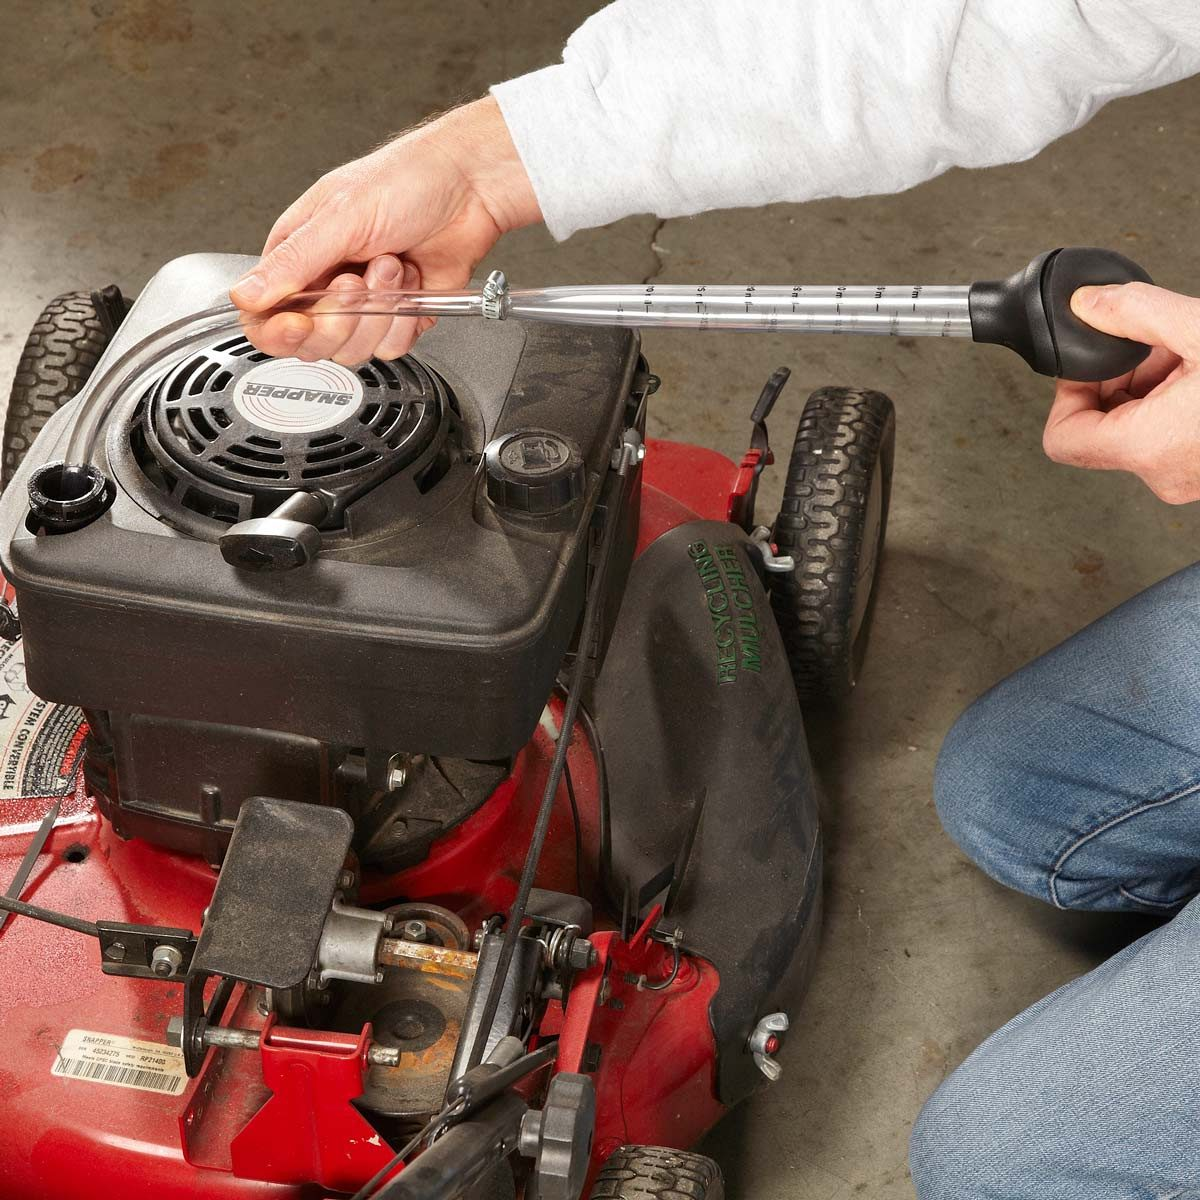 Can I Drain The Gas Out Of My Lawn Mower